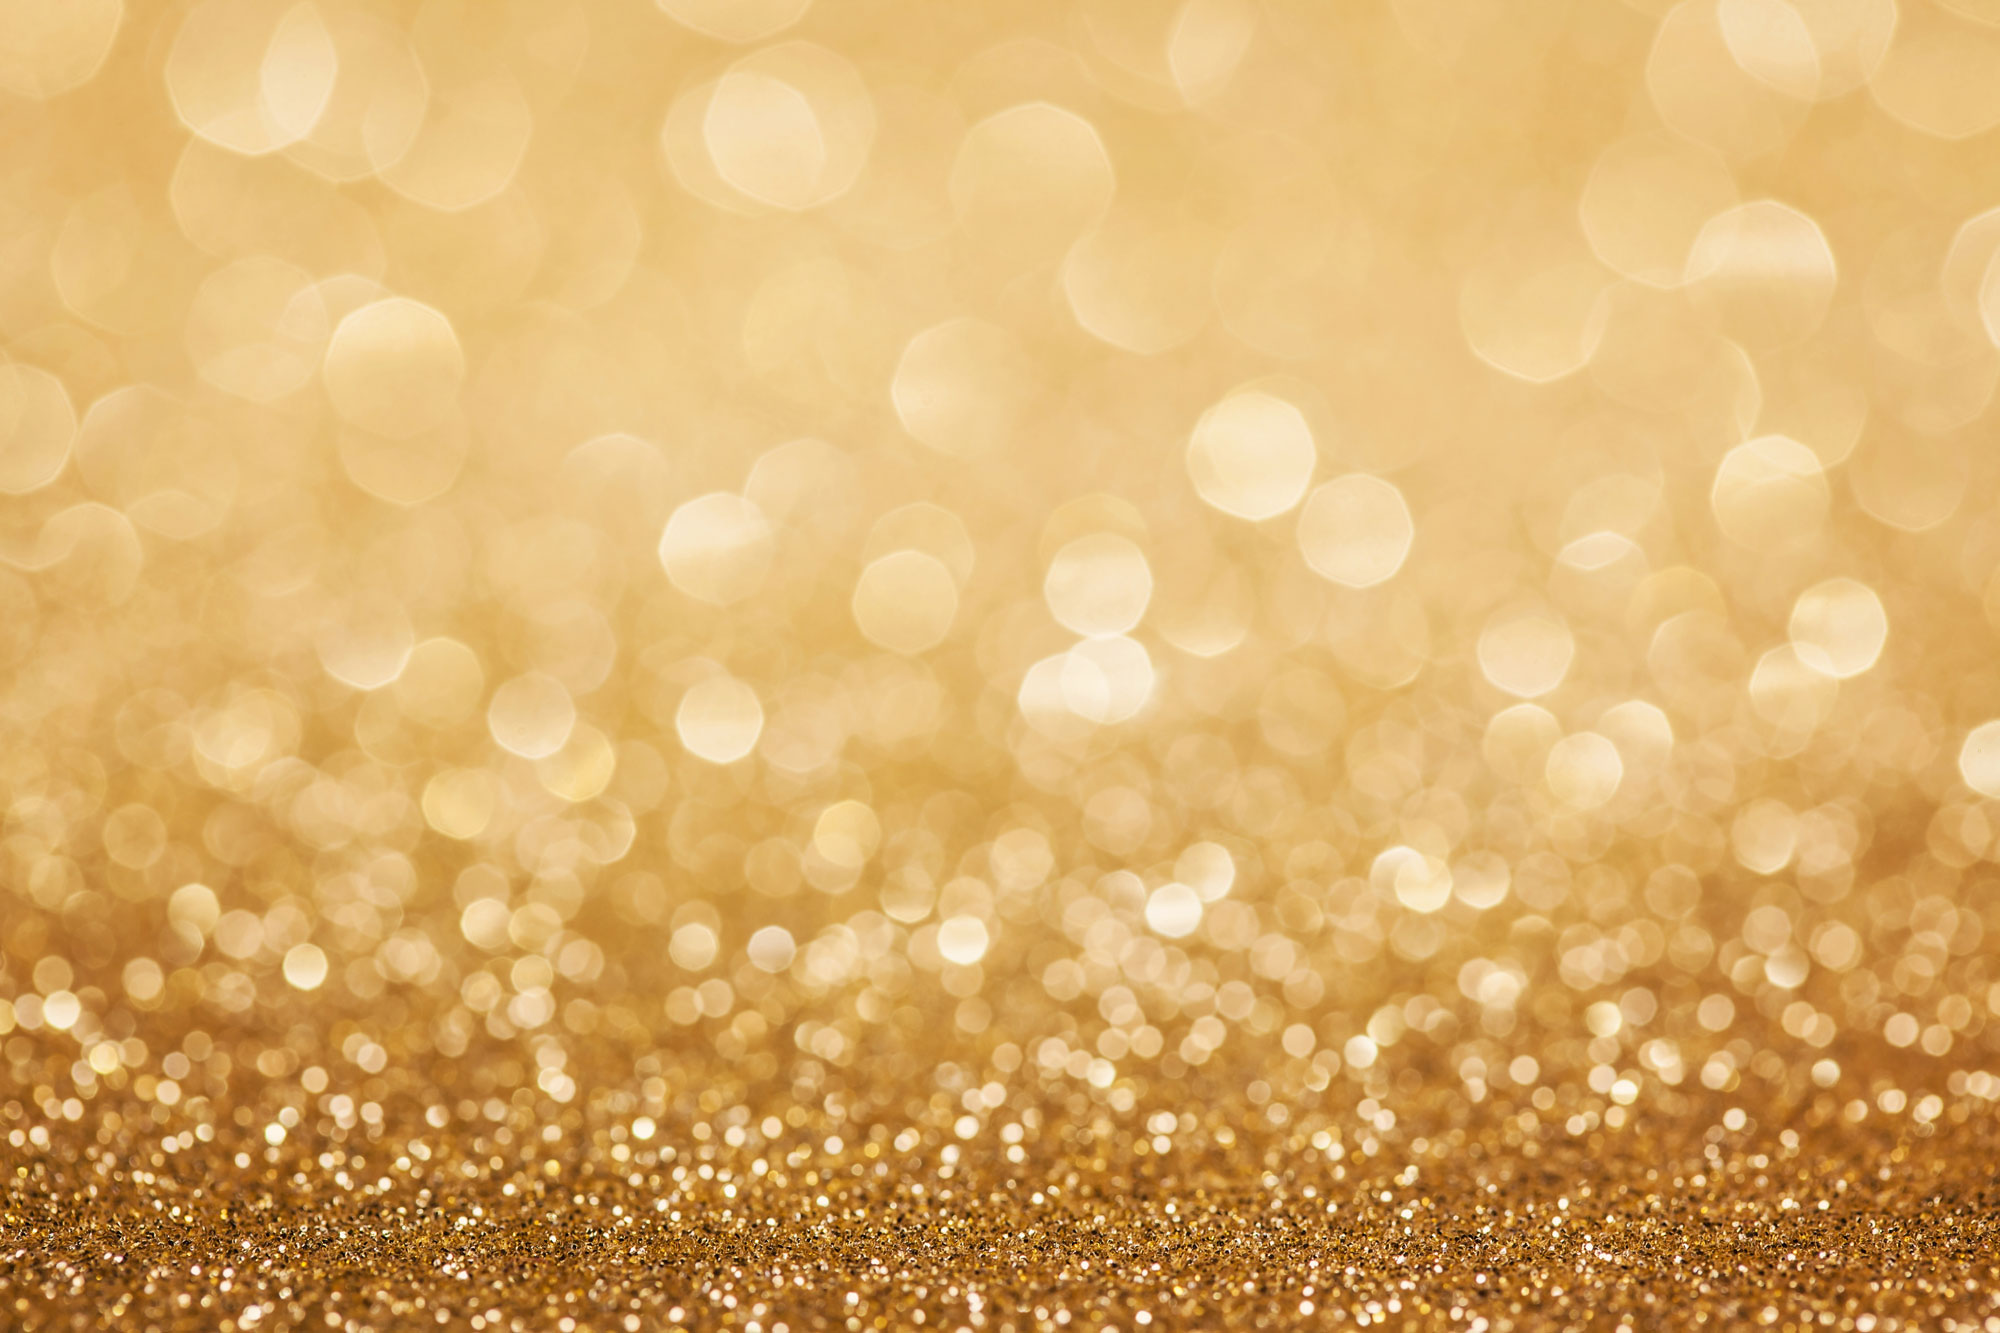 Gold Glitter Background Wallpaper - WallpaperSafari